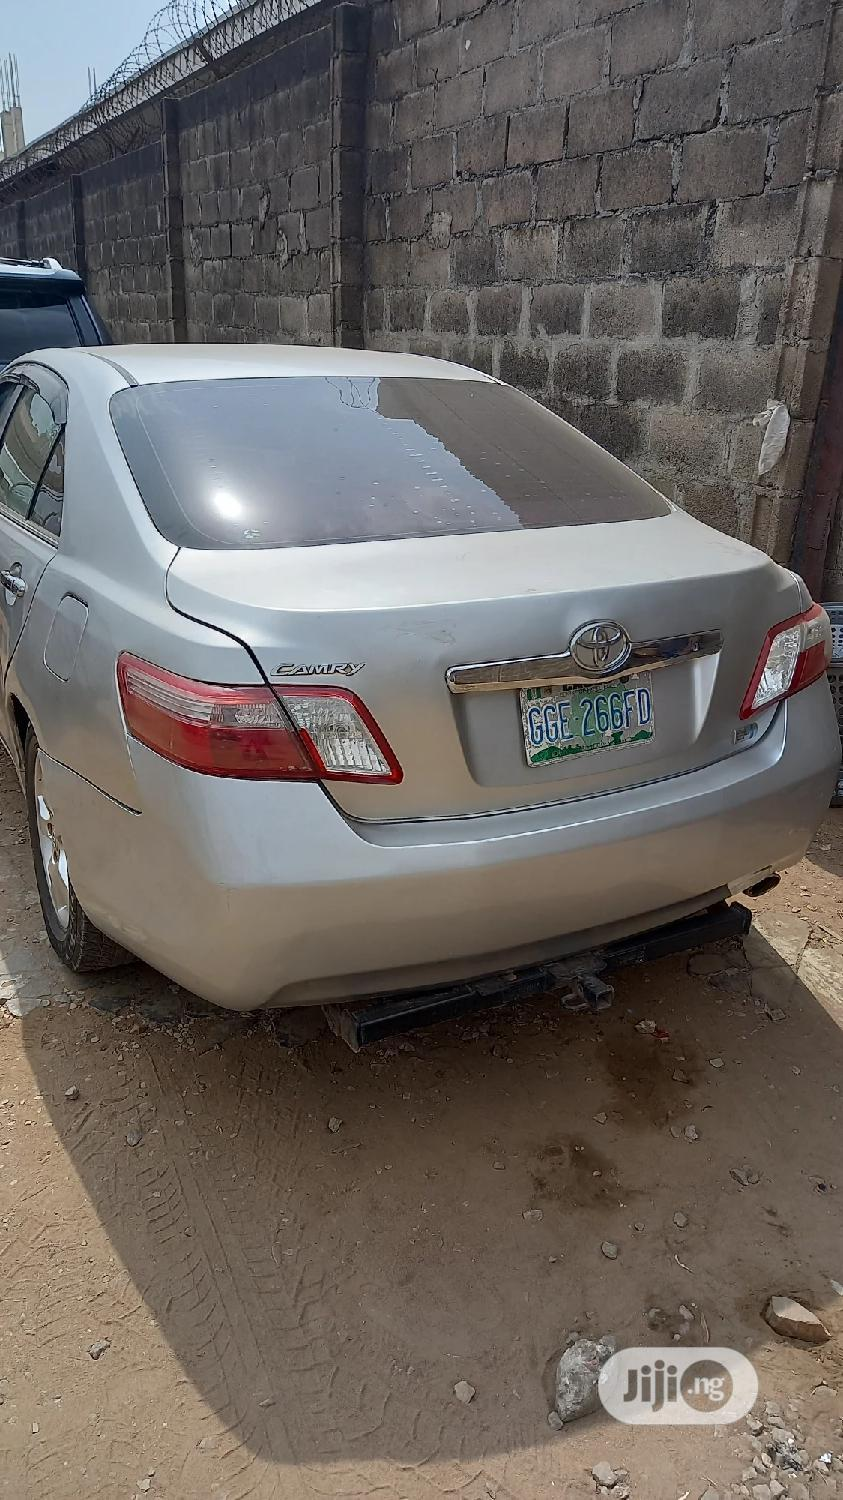 Toyota Camry 2008 Hybrid Silver | Cars for sale in Ikeja, Lagos State, Nigeria